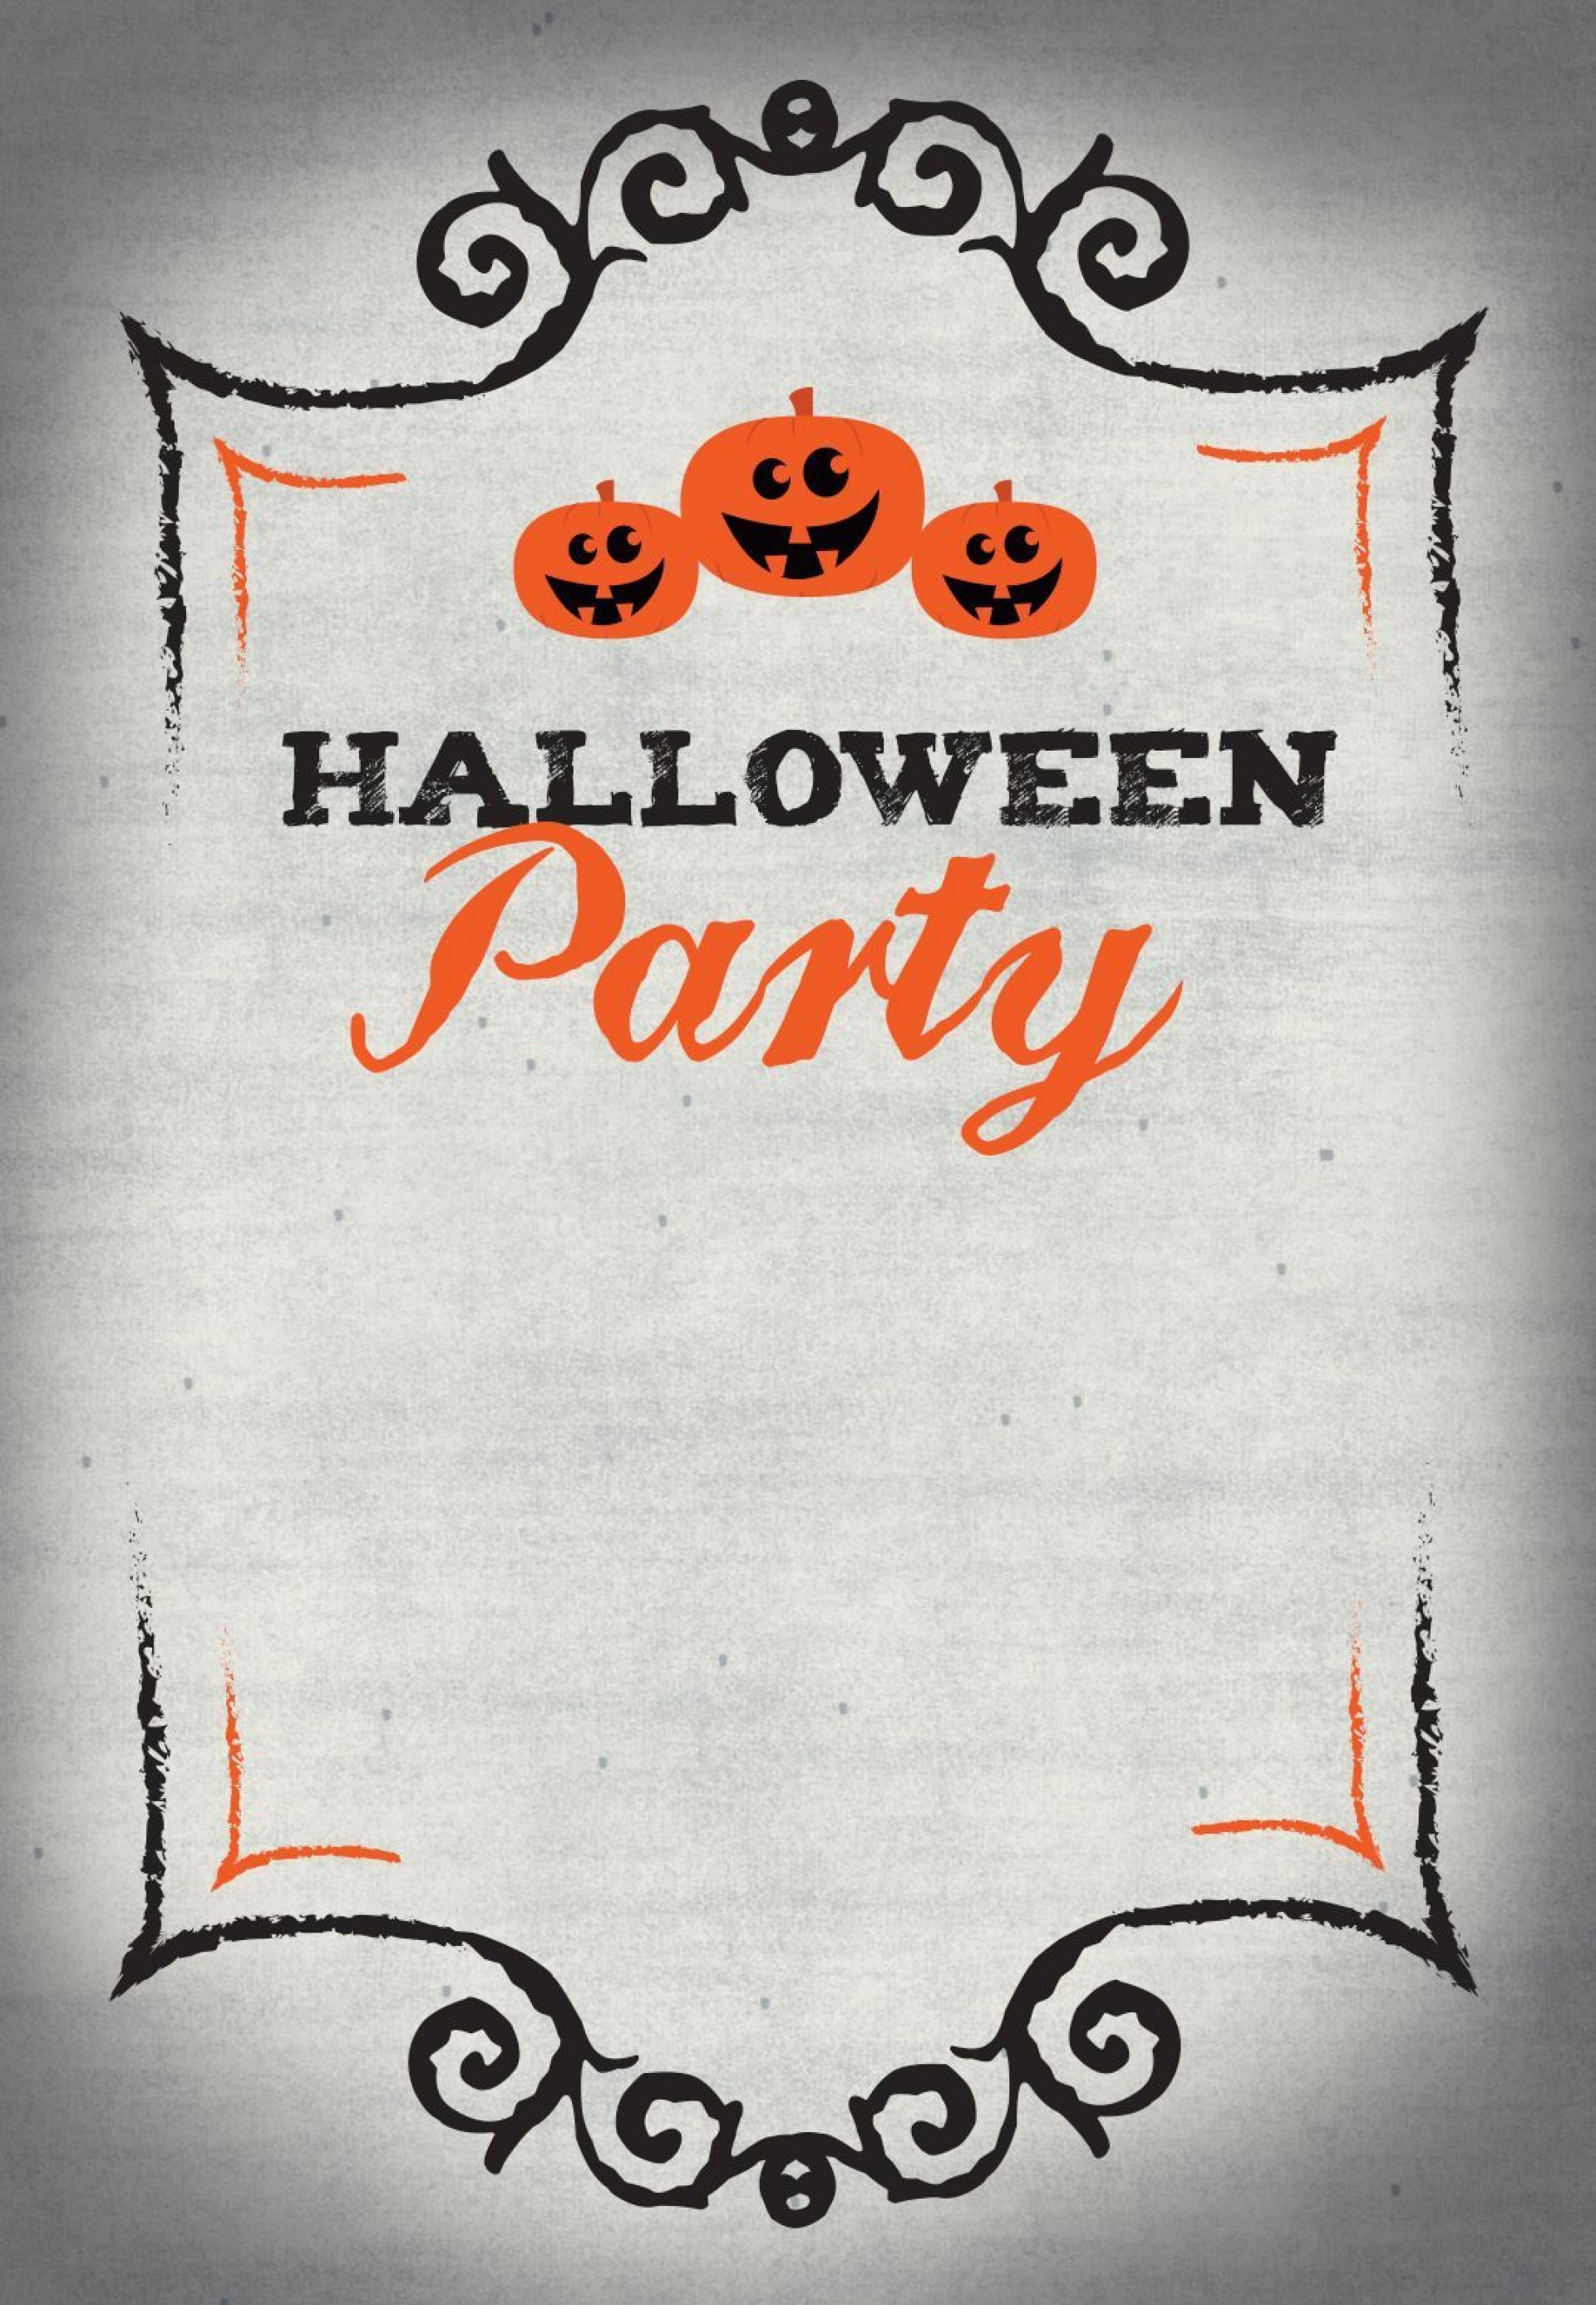 005 Unforgettable Halloween Party Invitation Template Concept  Templates Scary Spooky1920